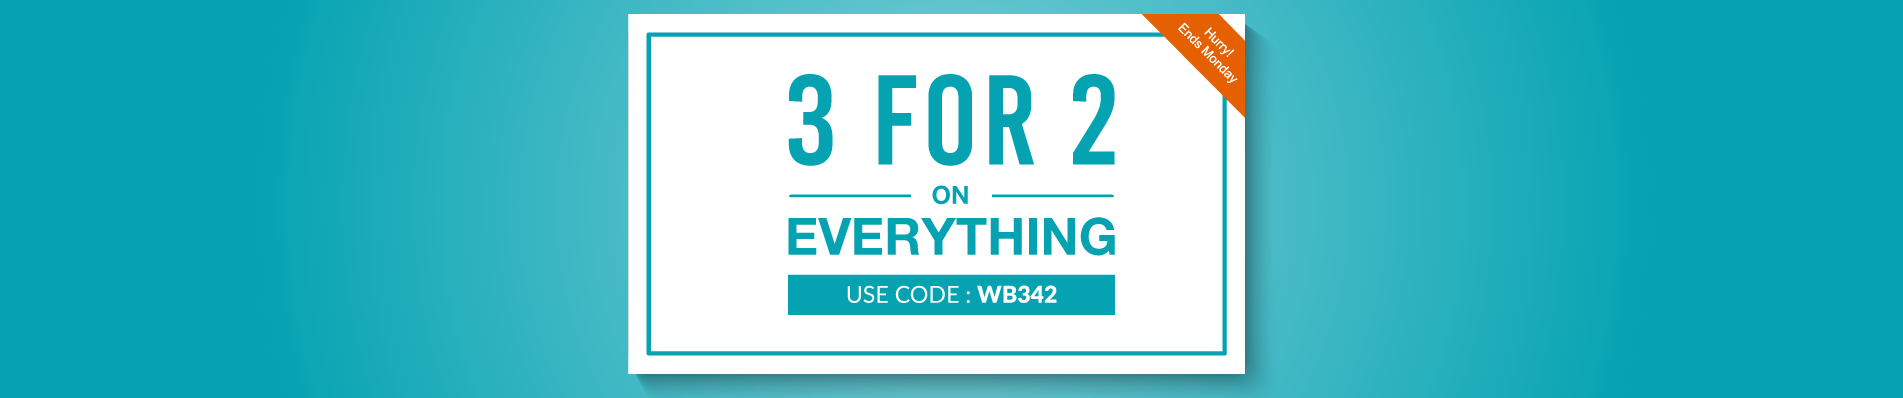 3 for 2 on everything with code WB342